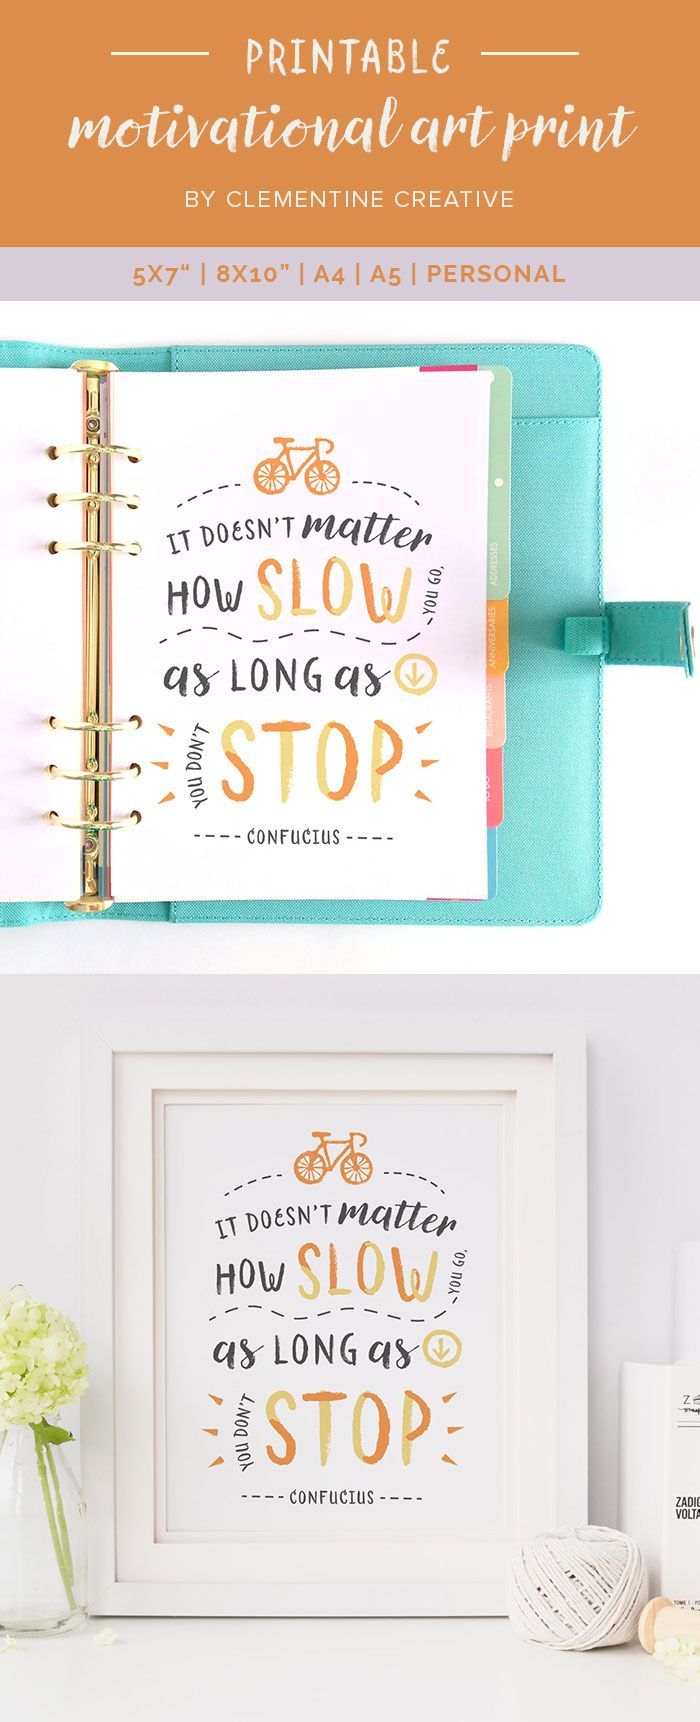 "Frustrated with slow progress? Keep this inspirational art print on your desk to remind you that it is okay to go slow, as long as you don't stop. This print is available in 5x7"", 8x10"", A5, A4 and Personal size. Click here to buy."